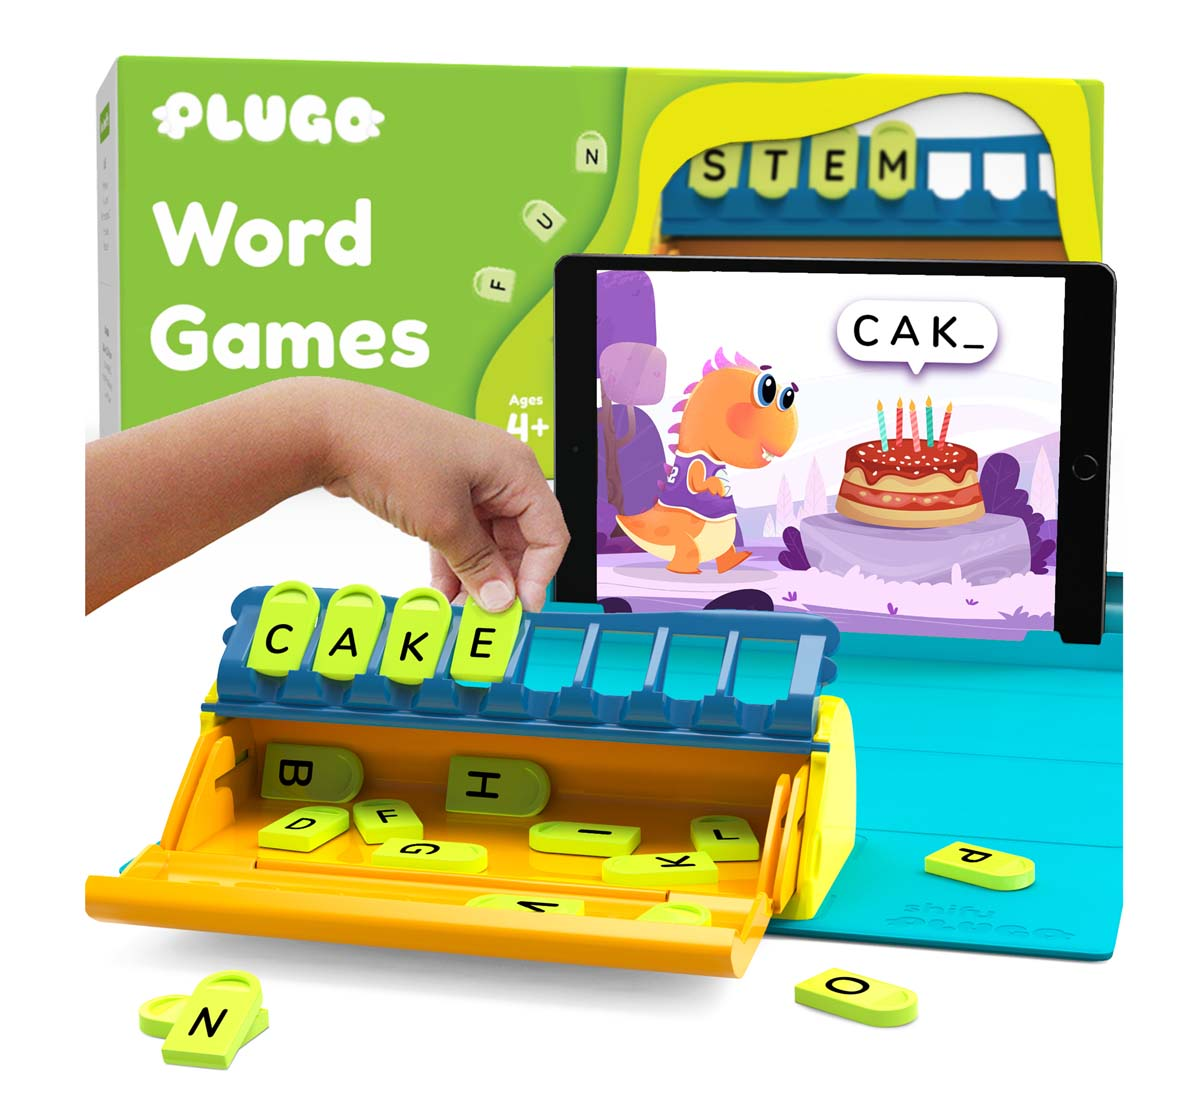 Playshifu | Plugo Letters - Word Building with Stories & Puzzles Games for Kids age 4Y+